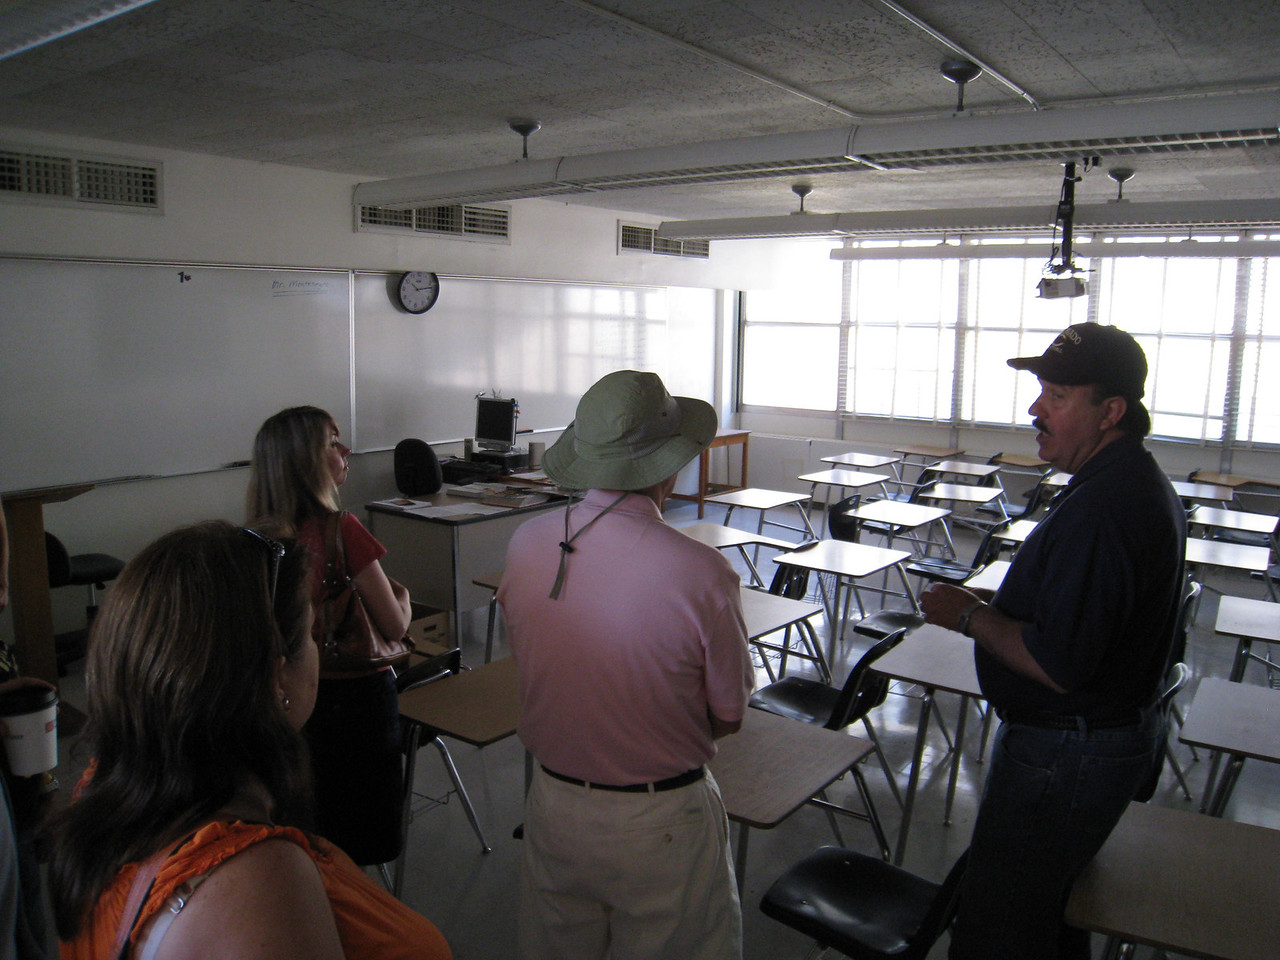 Mr. Guiterrez showing us around the classrooms. Not much has changed.